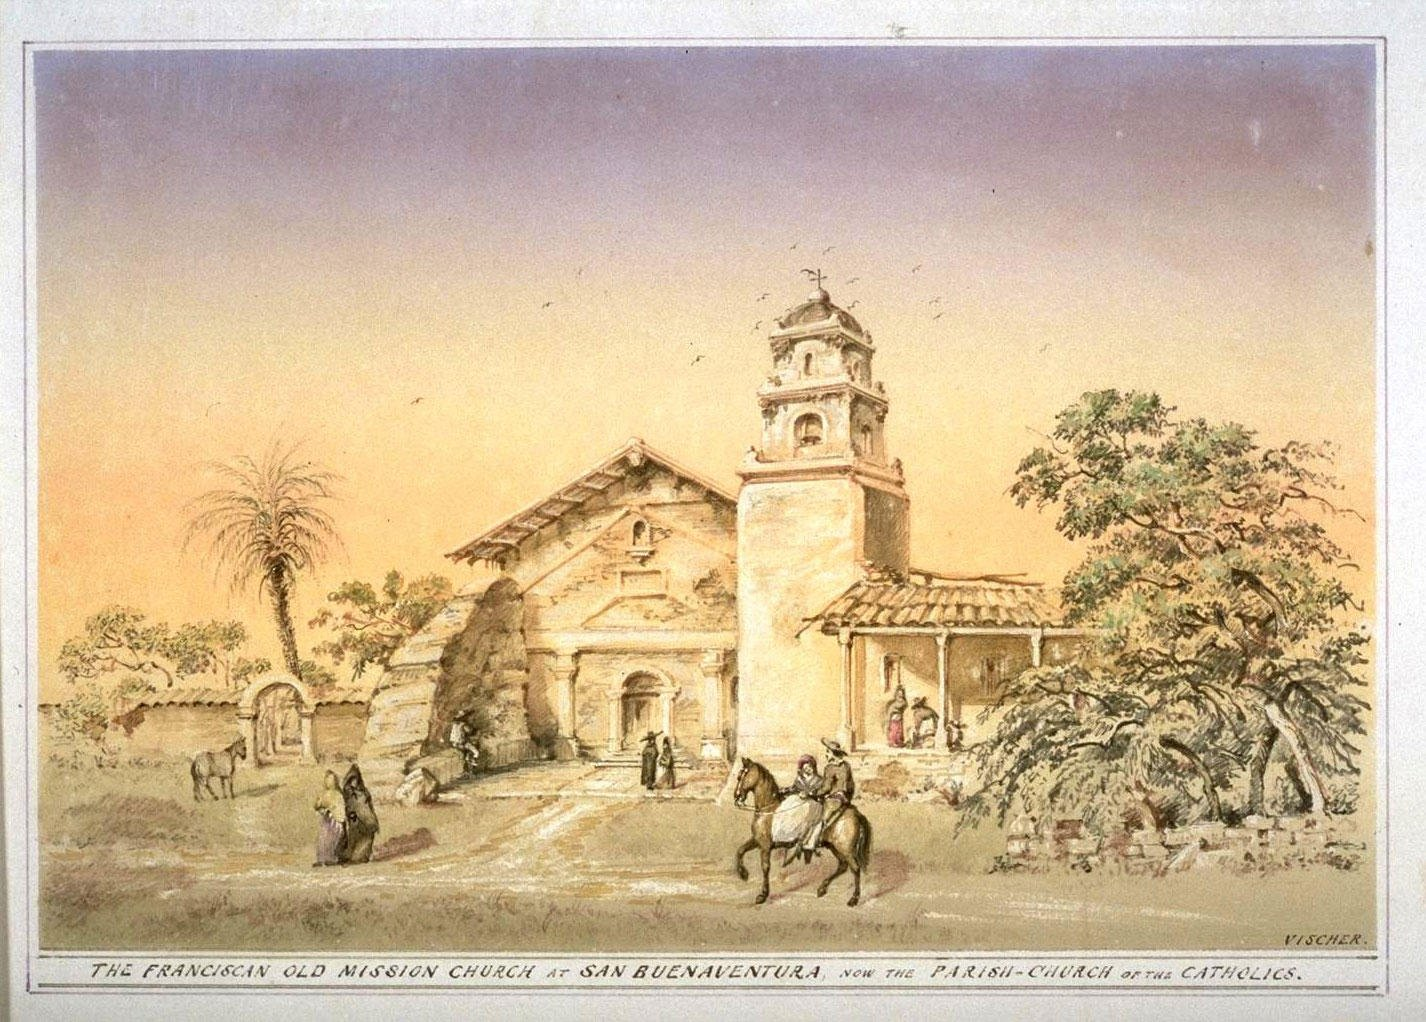 Edward Vischer's sketch of San Buenaventura, published in the 1870s. Vischer's sketches are sone of the best visual references for the era in California (UC Berkeley, Bancroft Library).